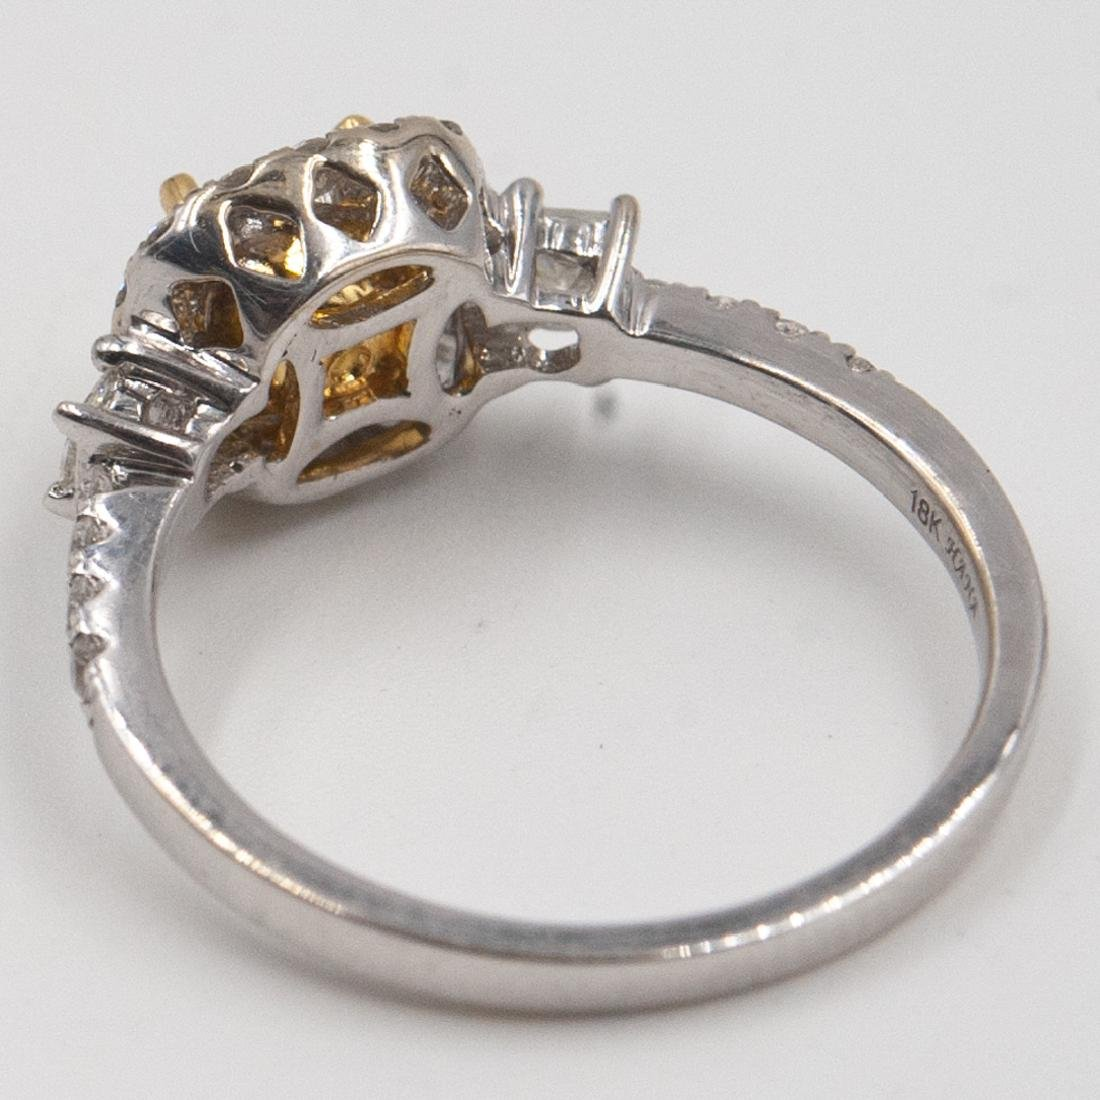 18k Gold and Yellow Diamond Ring - 4